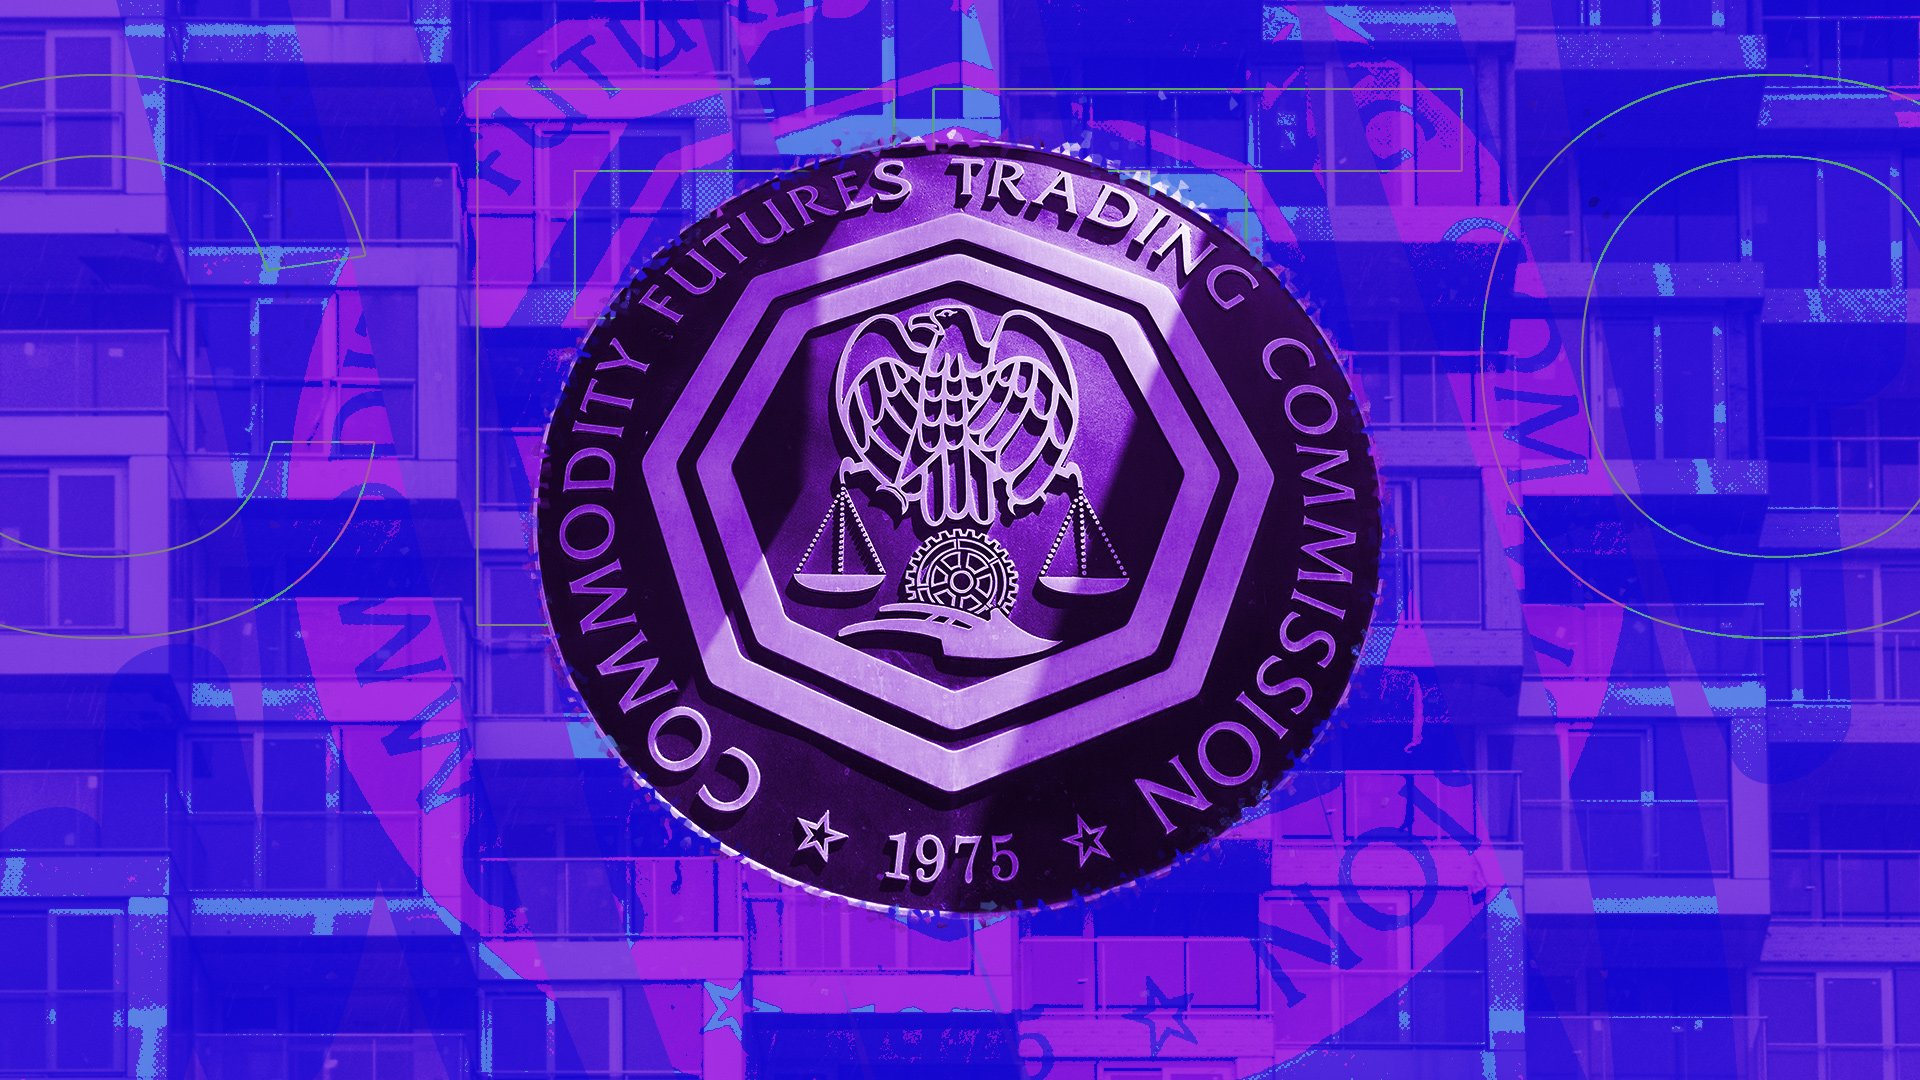 0x senior counsel moves to policy advisory role at CFTC